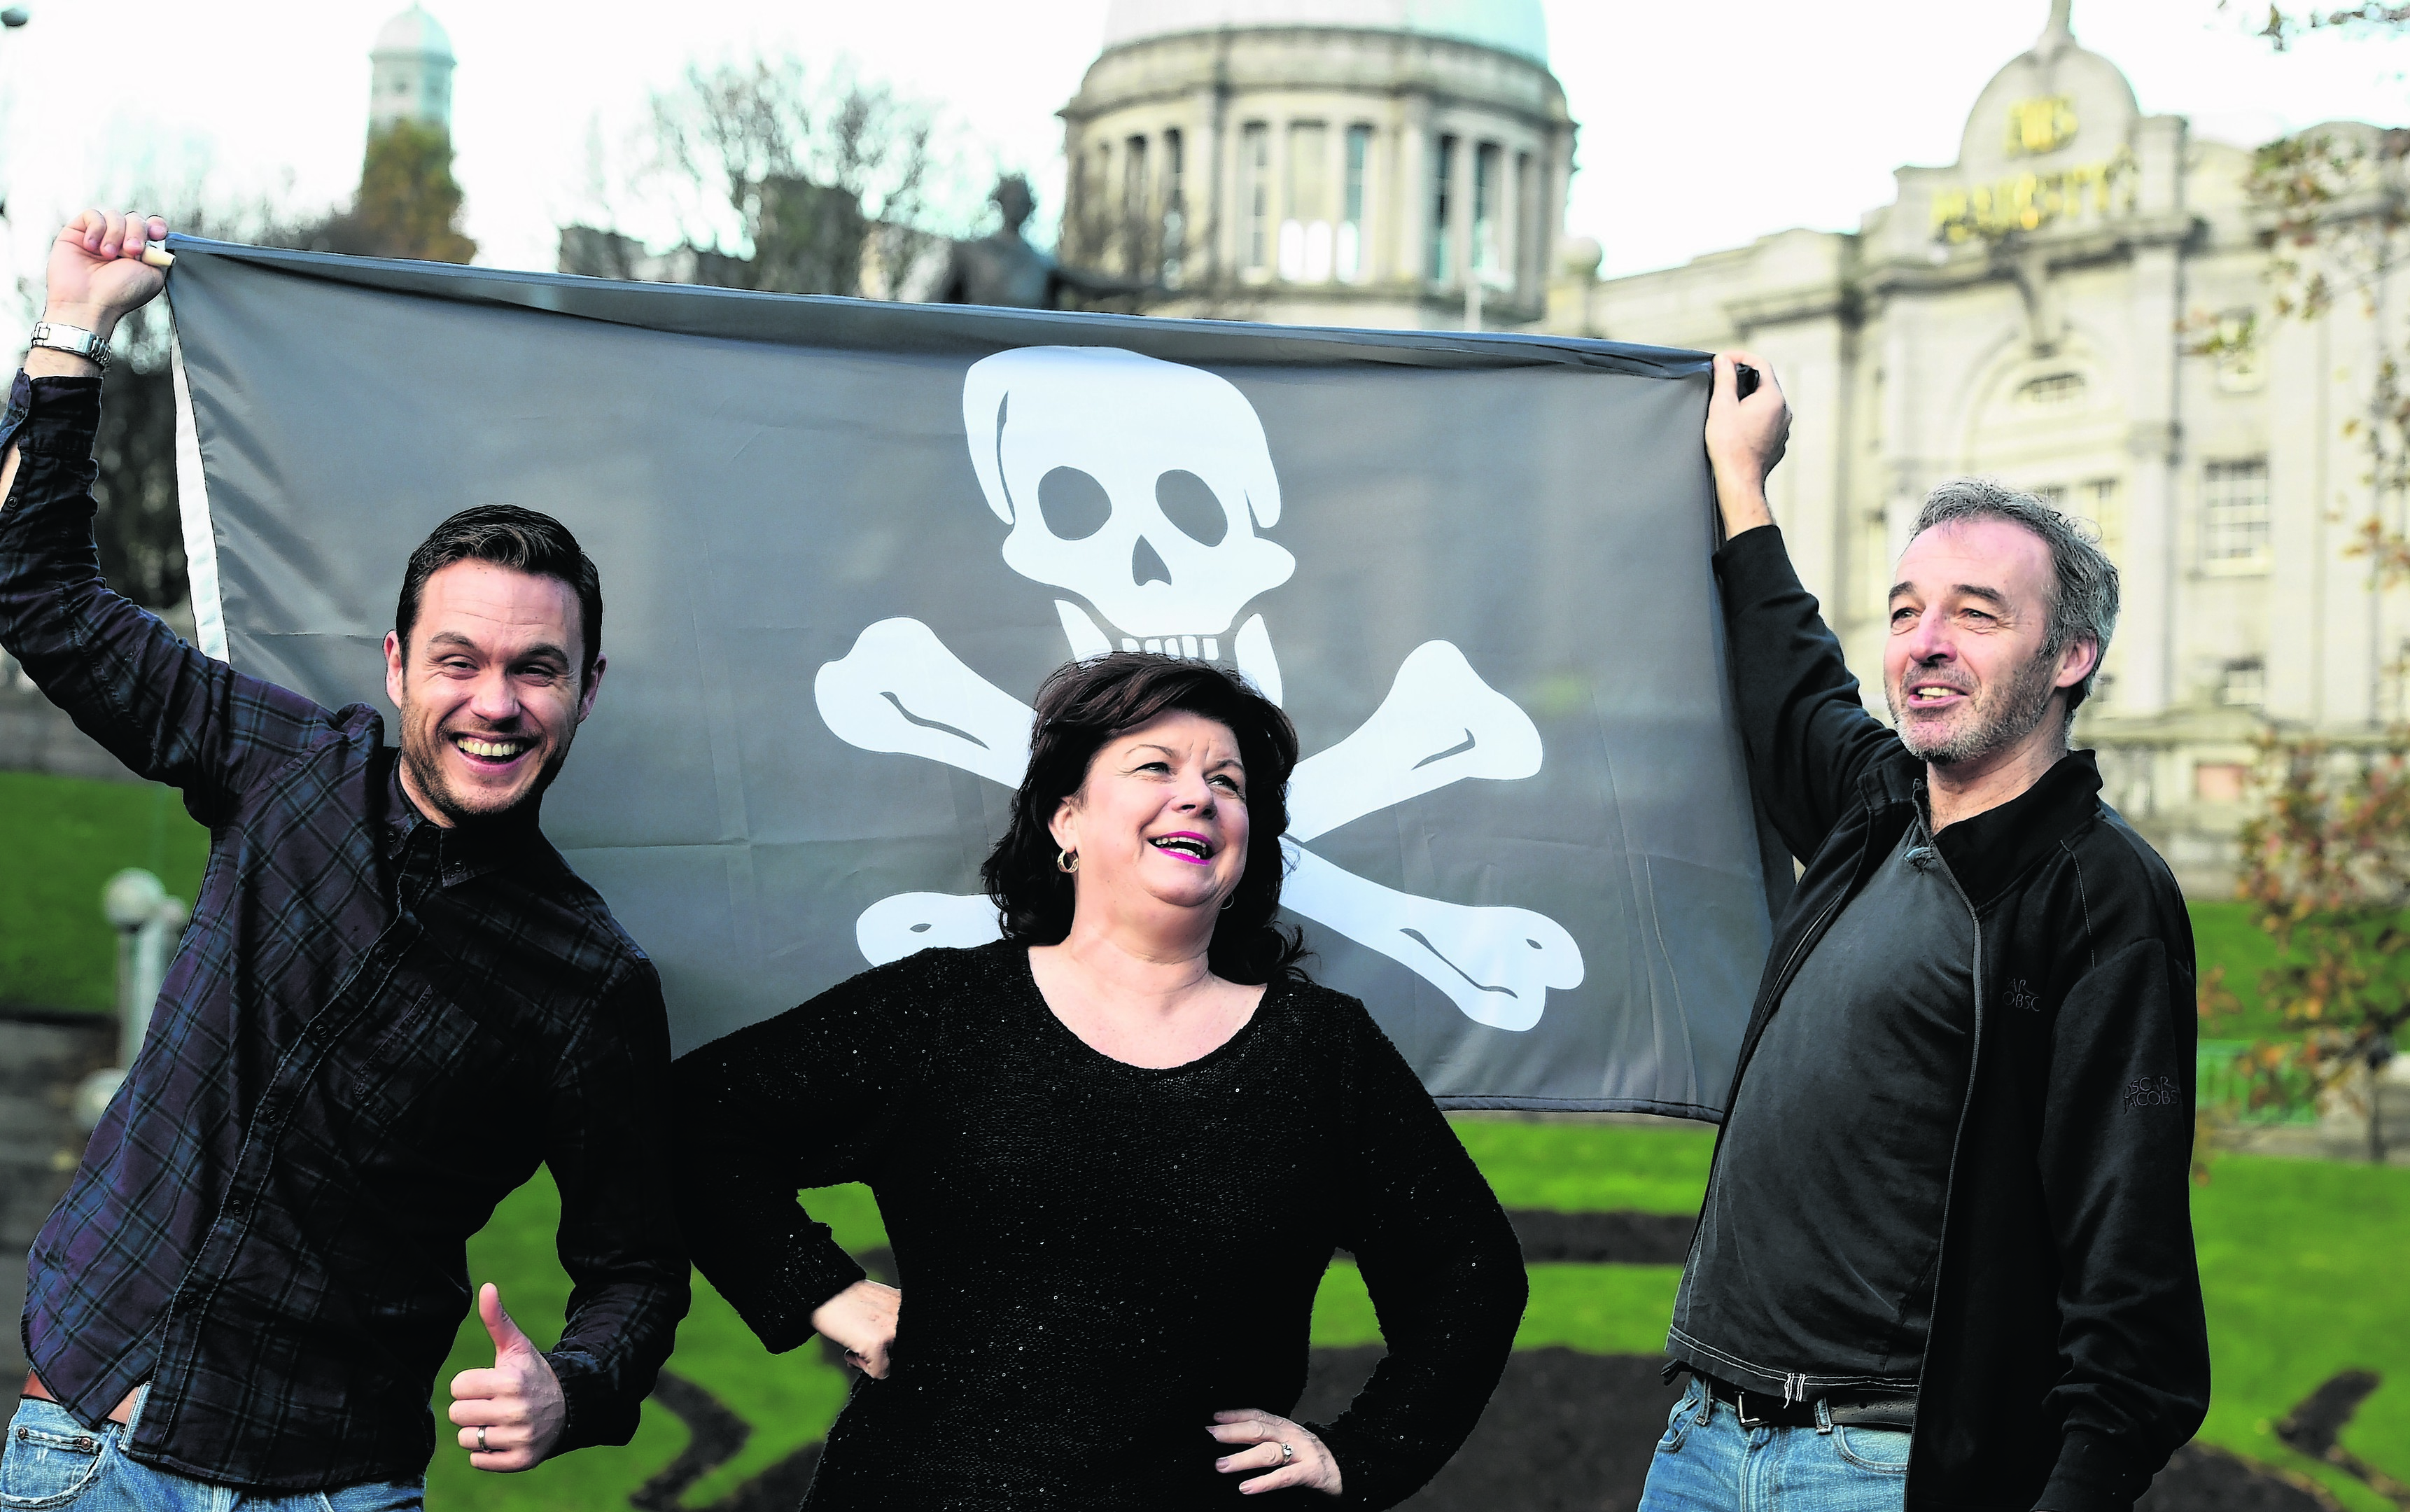 Panto stars, from left, Jordan Young, Elaine C. Smith and Alan McHugh outside HM Theatre in Aberdeen. Photos: Jim Irvine